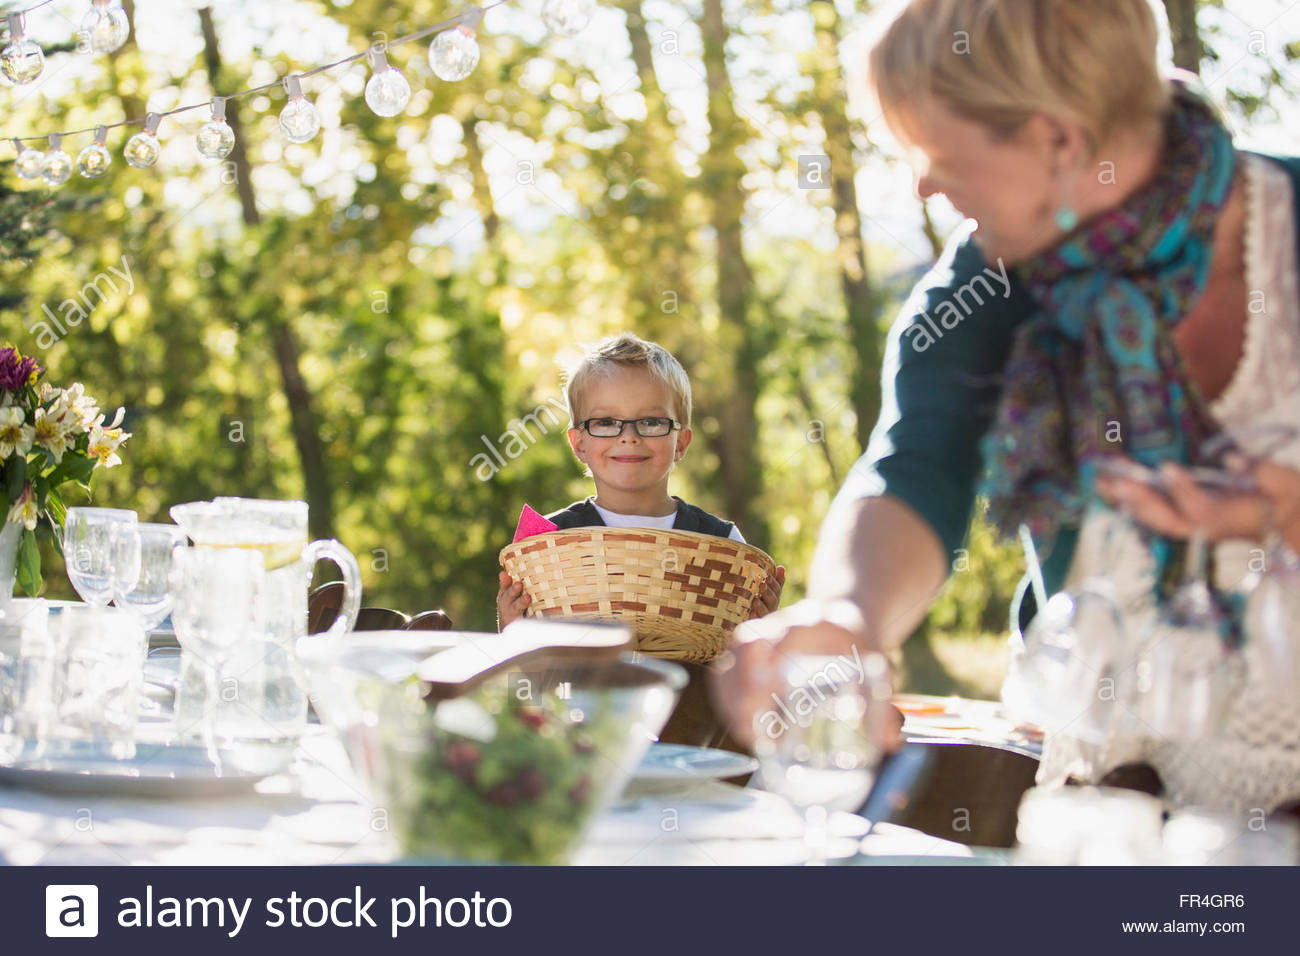 Six year old boy helping his mom to set an outdoor table. - Stock Image